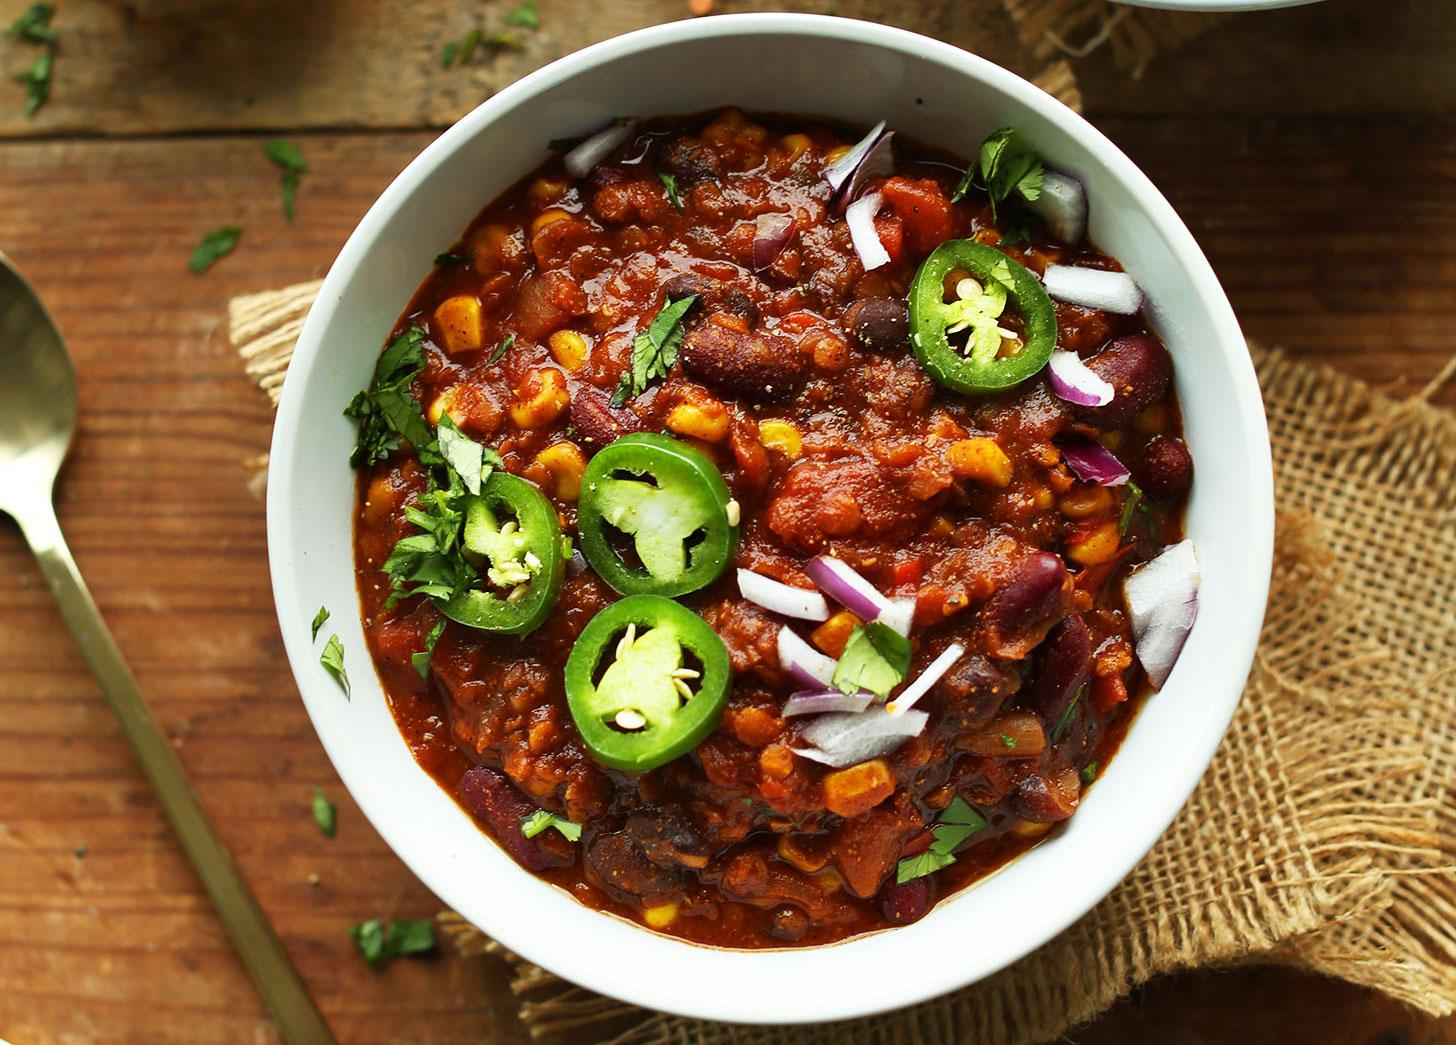 DELICIOUS-1-POT-Lentil-and-Black-Bean-Chili-Smoky-hearty-PROTEIN-and-fiber-packed-vegan-glutenfree-lentils-chili-healthy-recipe-1526480471138.jpg